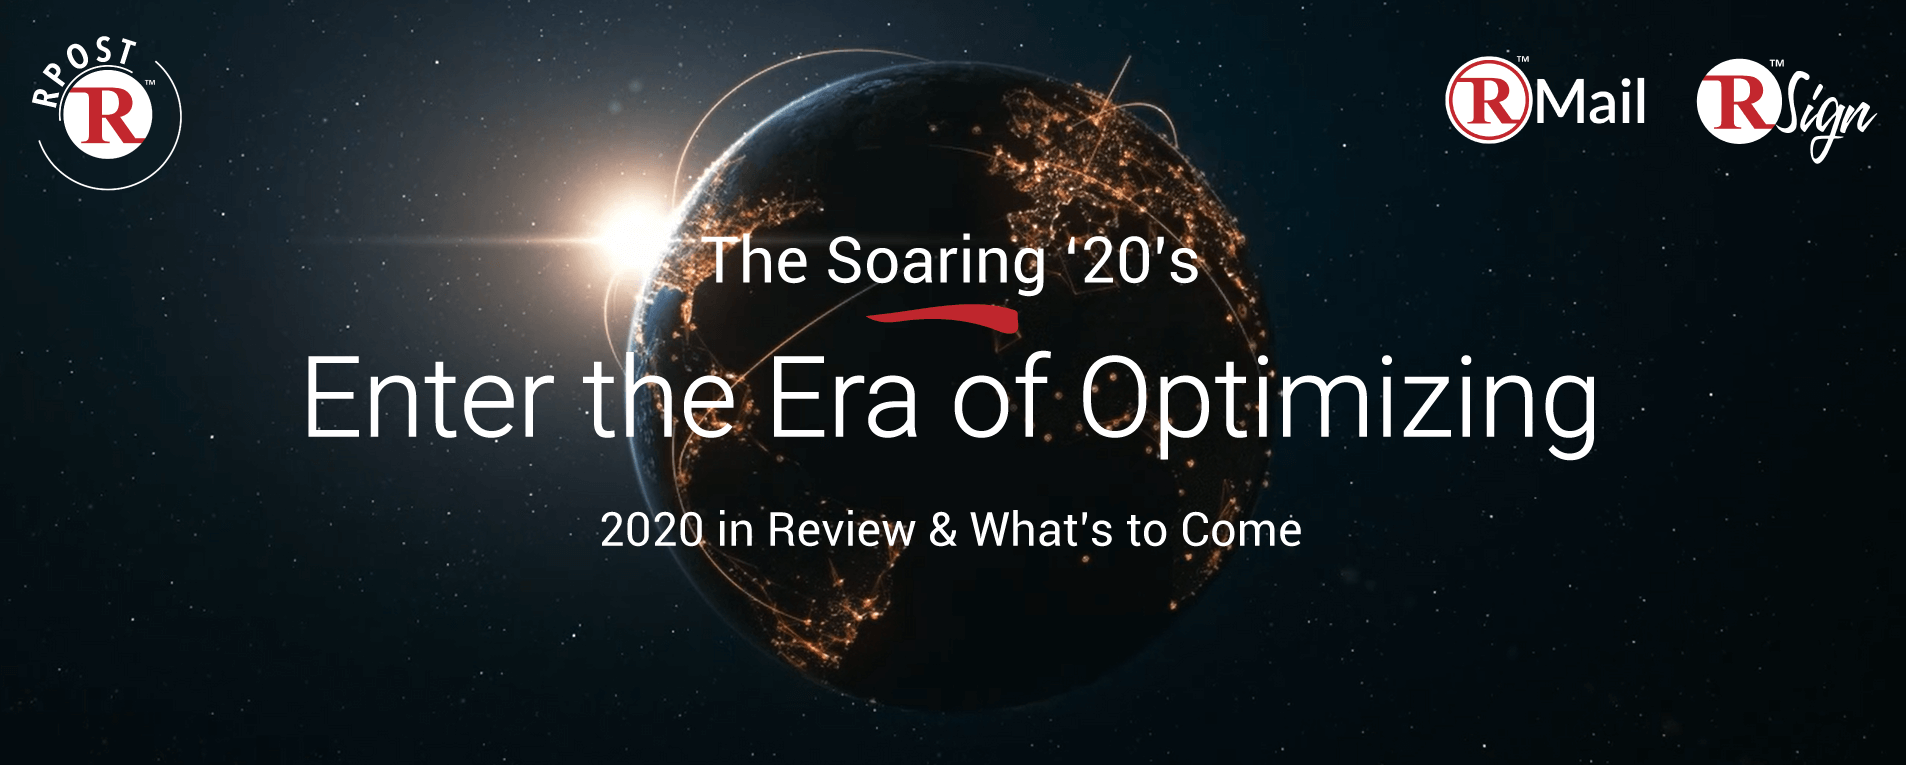 Enter the Soaring 20s with RPost—Year in Review and What's Ahead